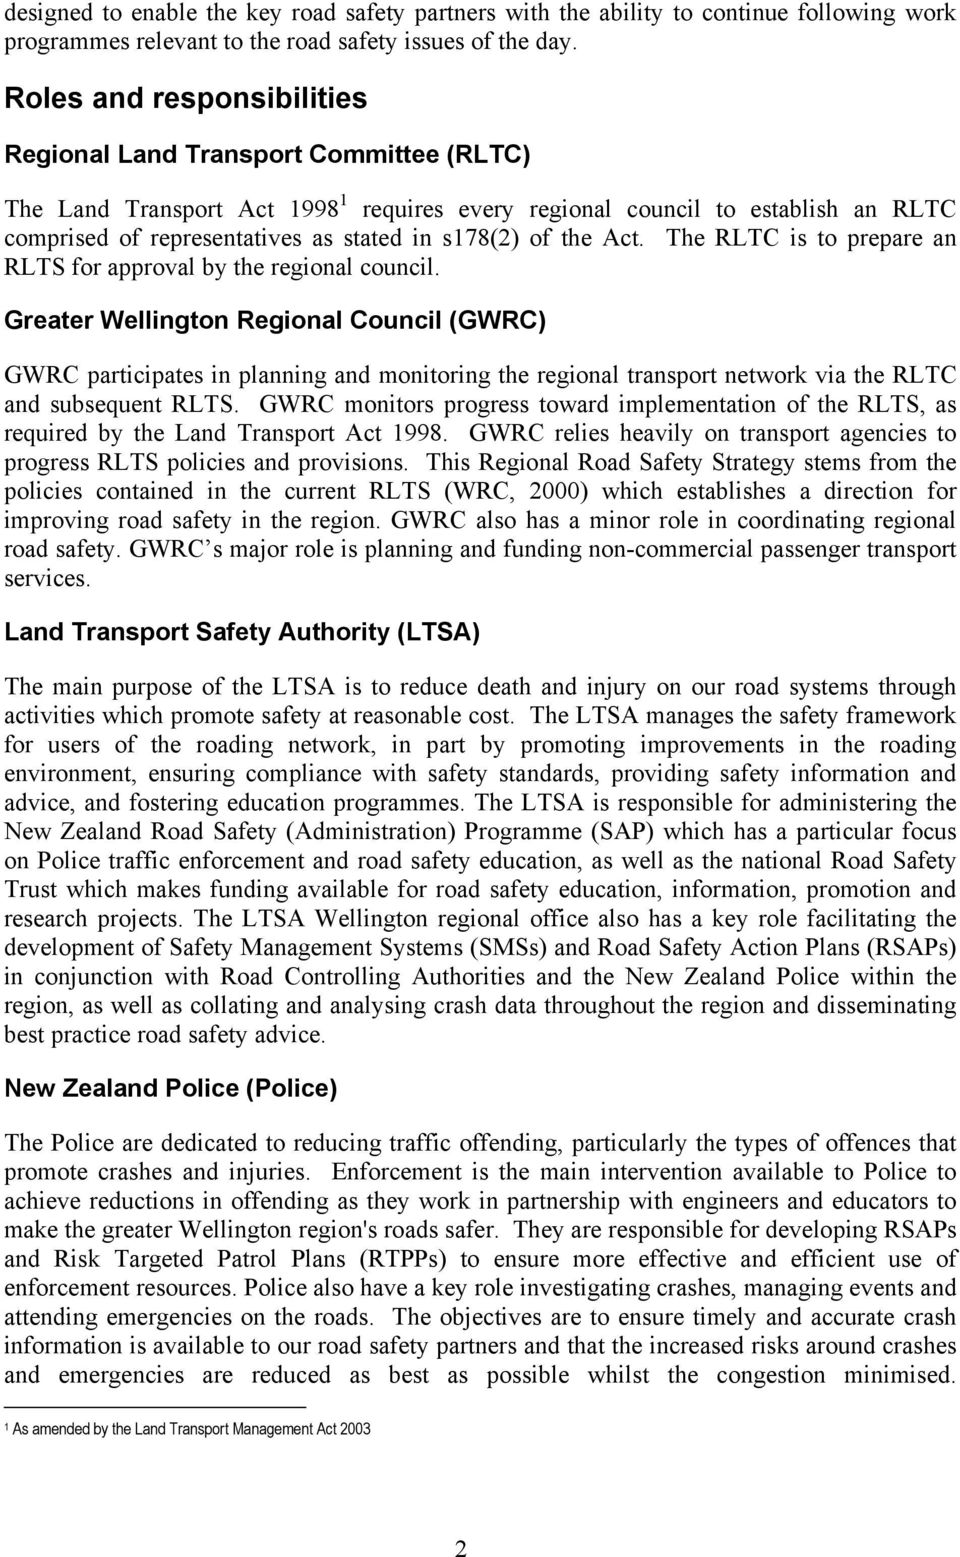 s178(2) of the Act. The RLTC is to prepare an RLTS for approval by the regional council.